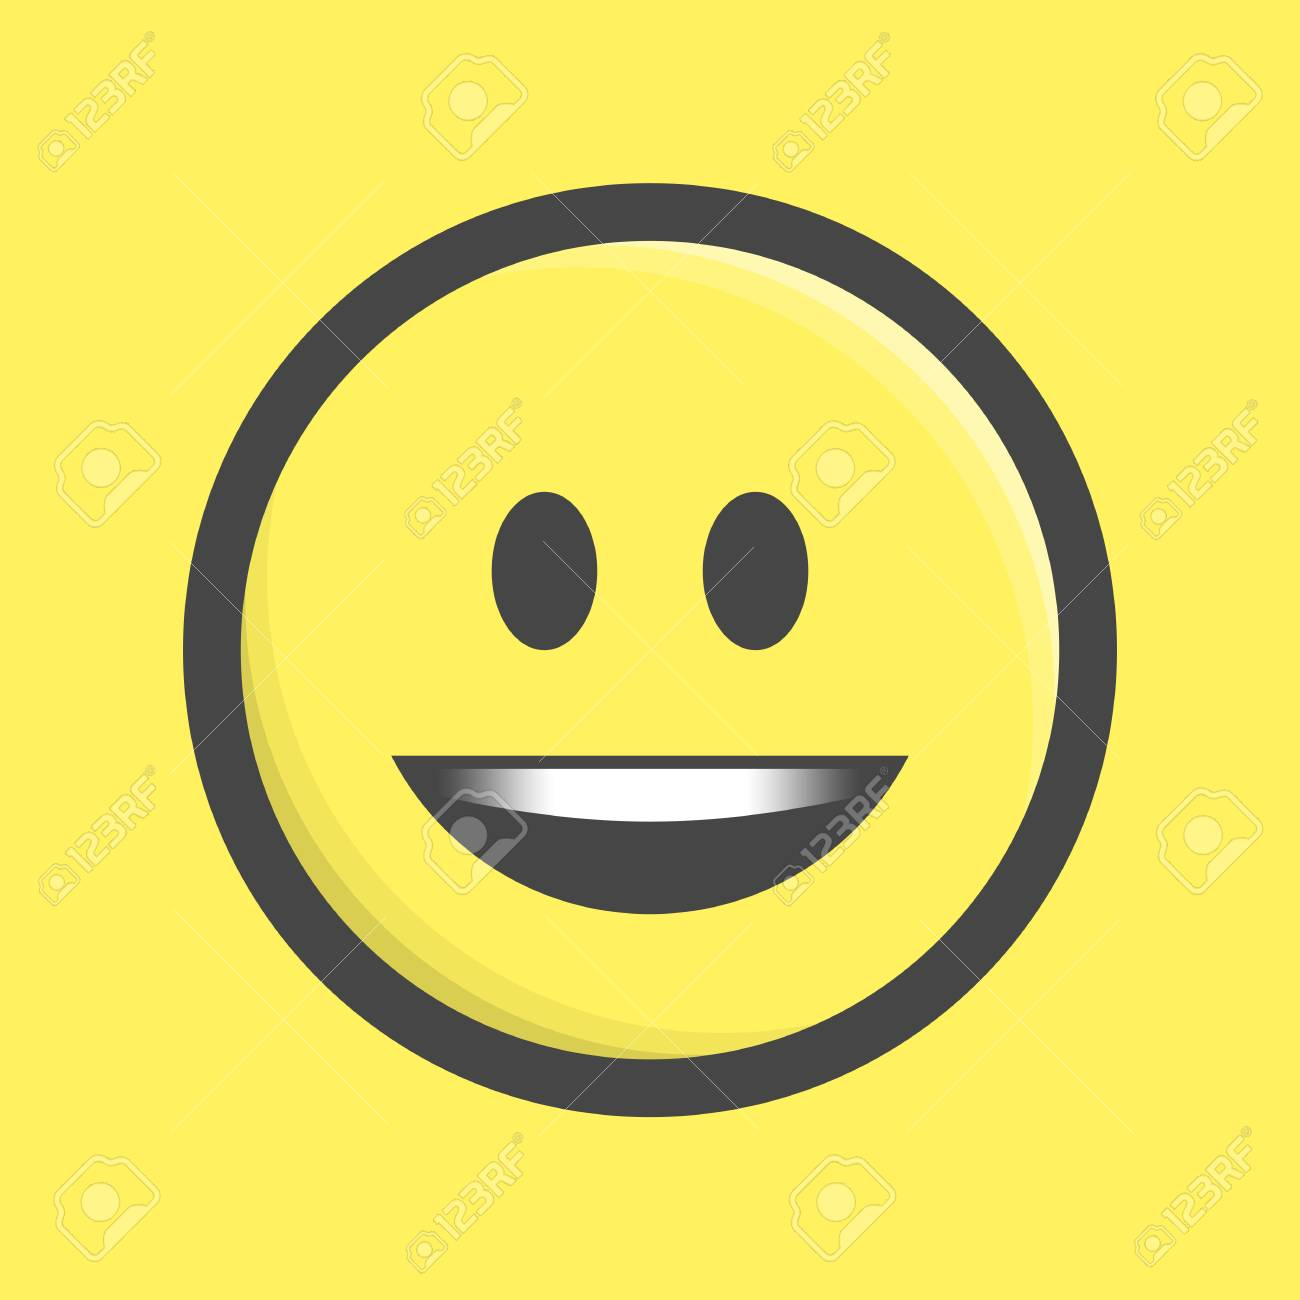 smile vector icon smiling emoticon in flat style isolate on